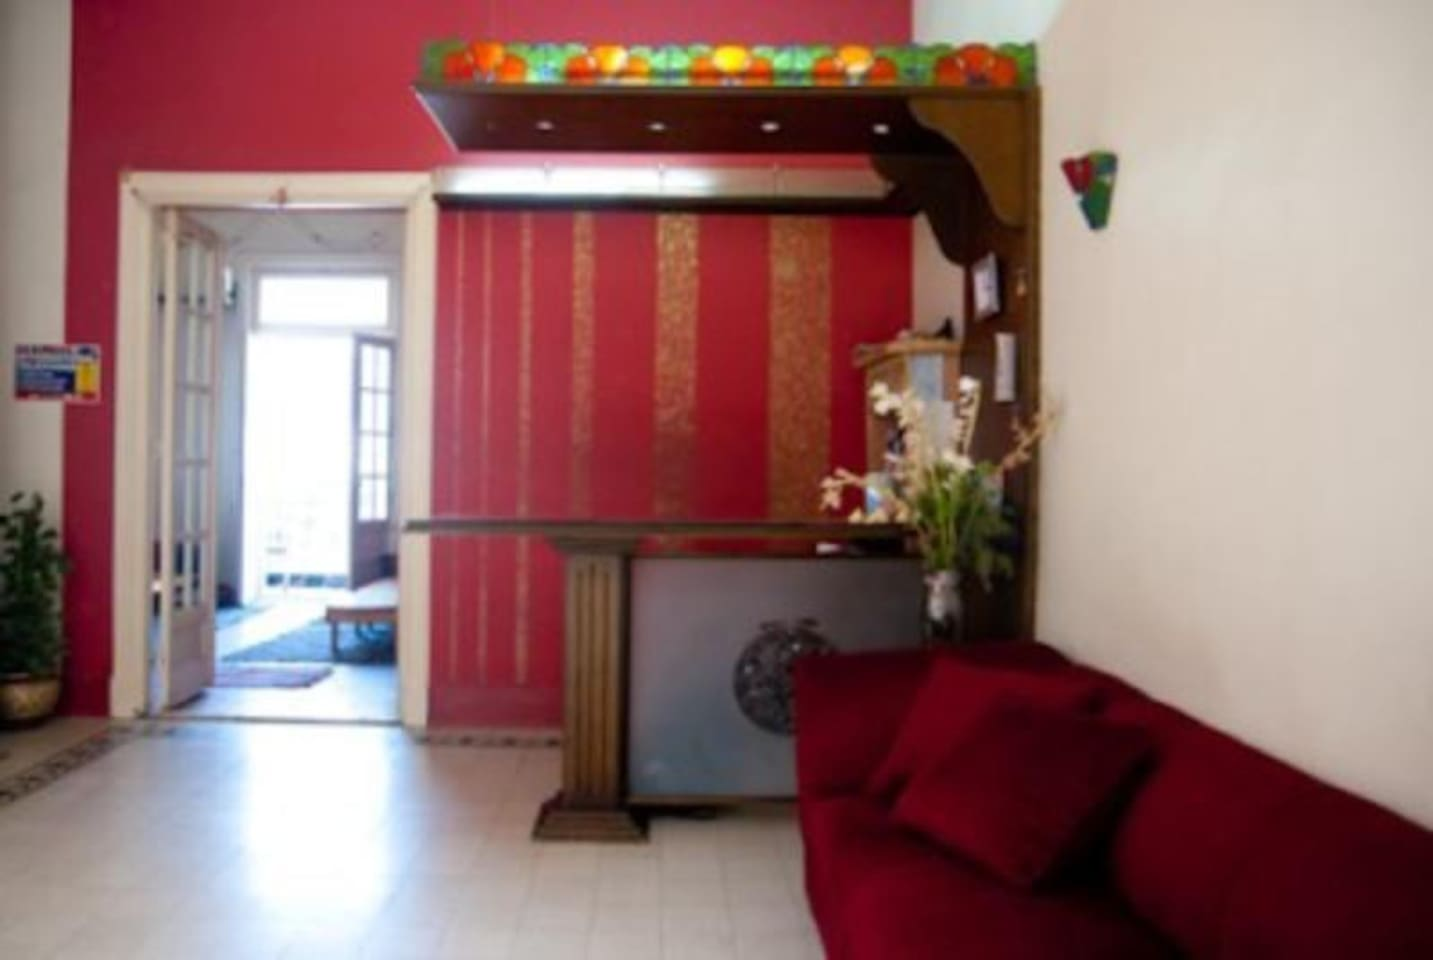 hostel common room and the lobby